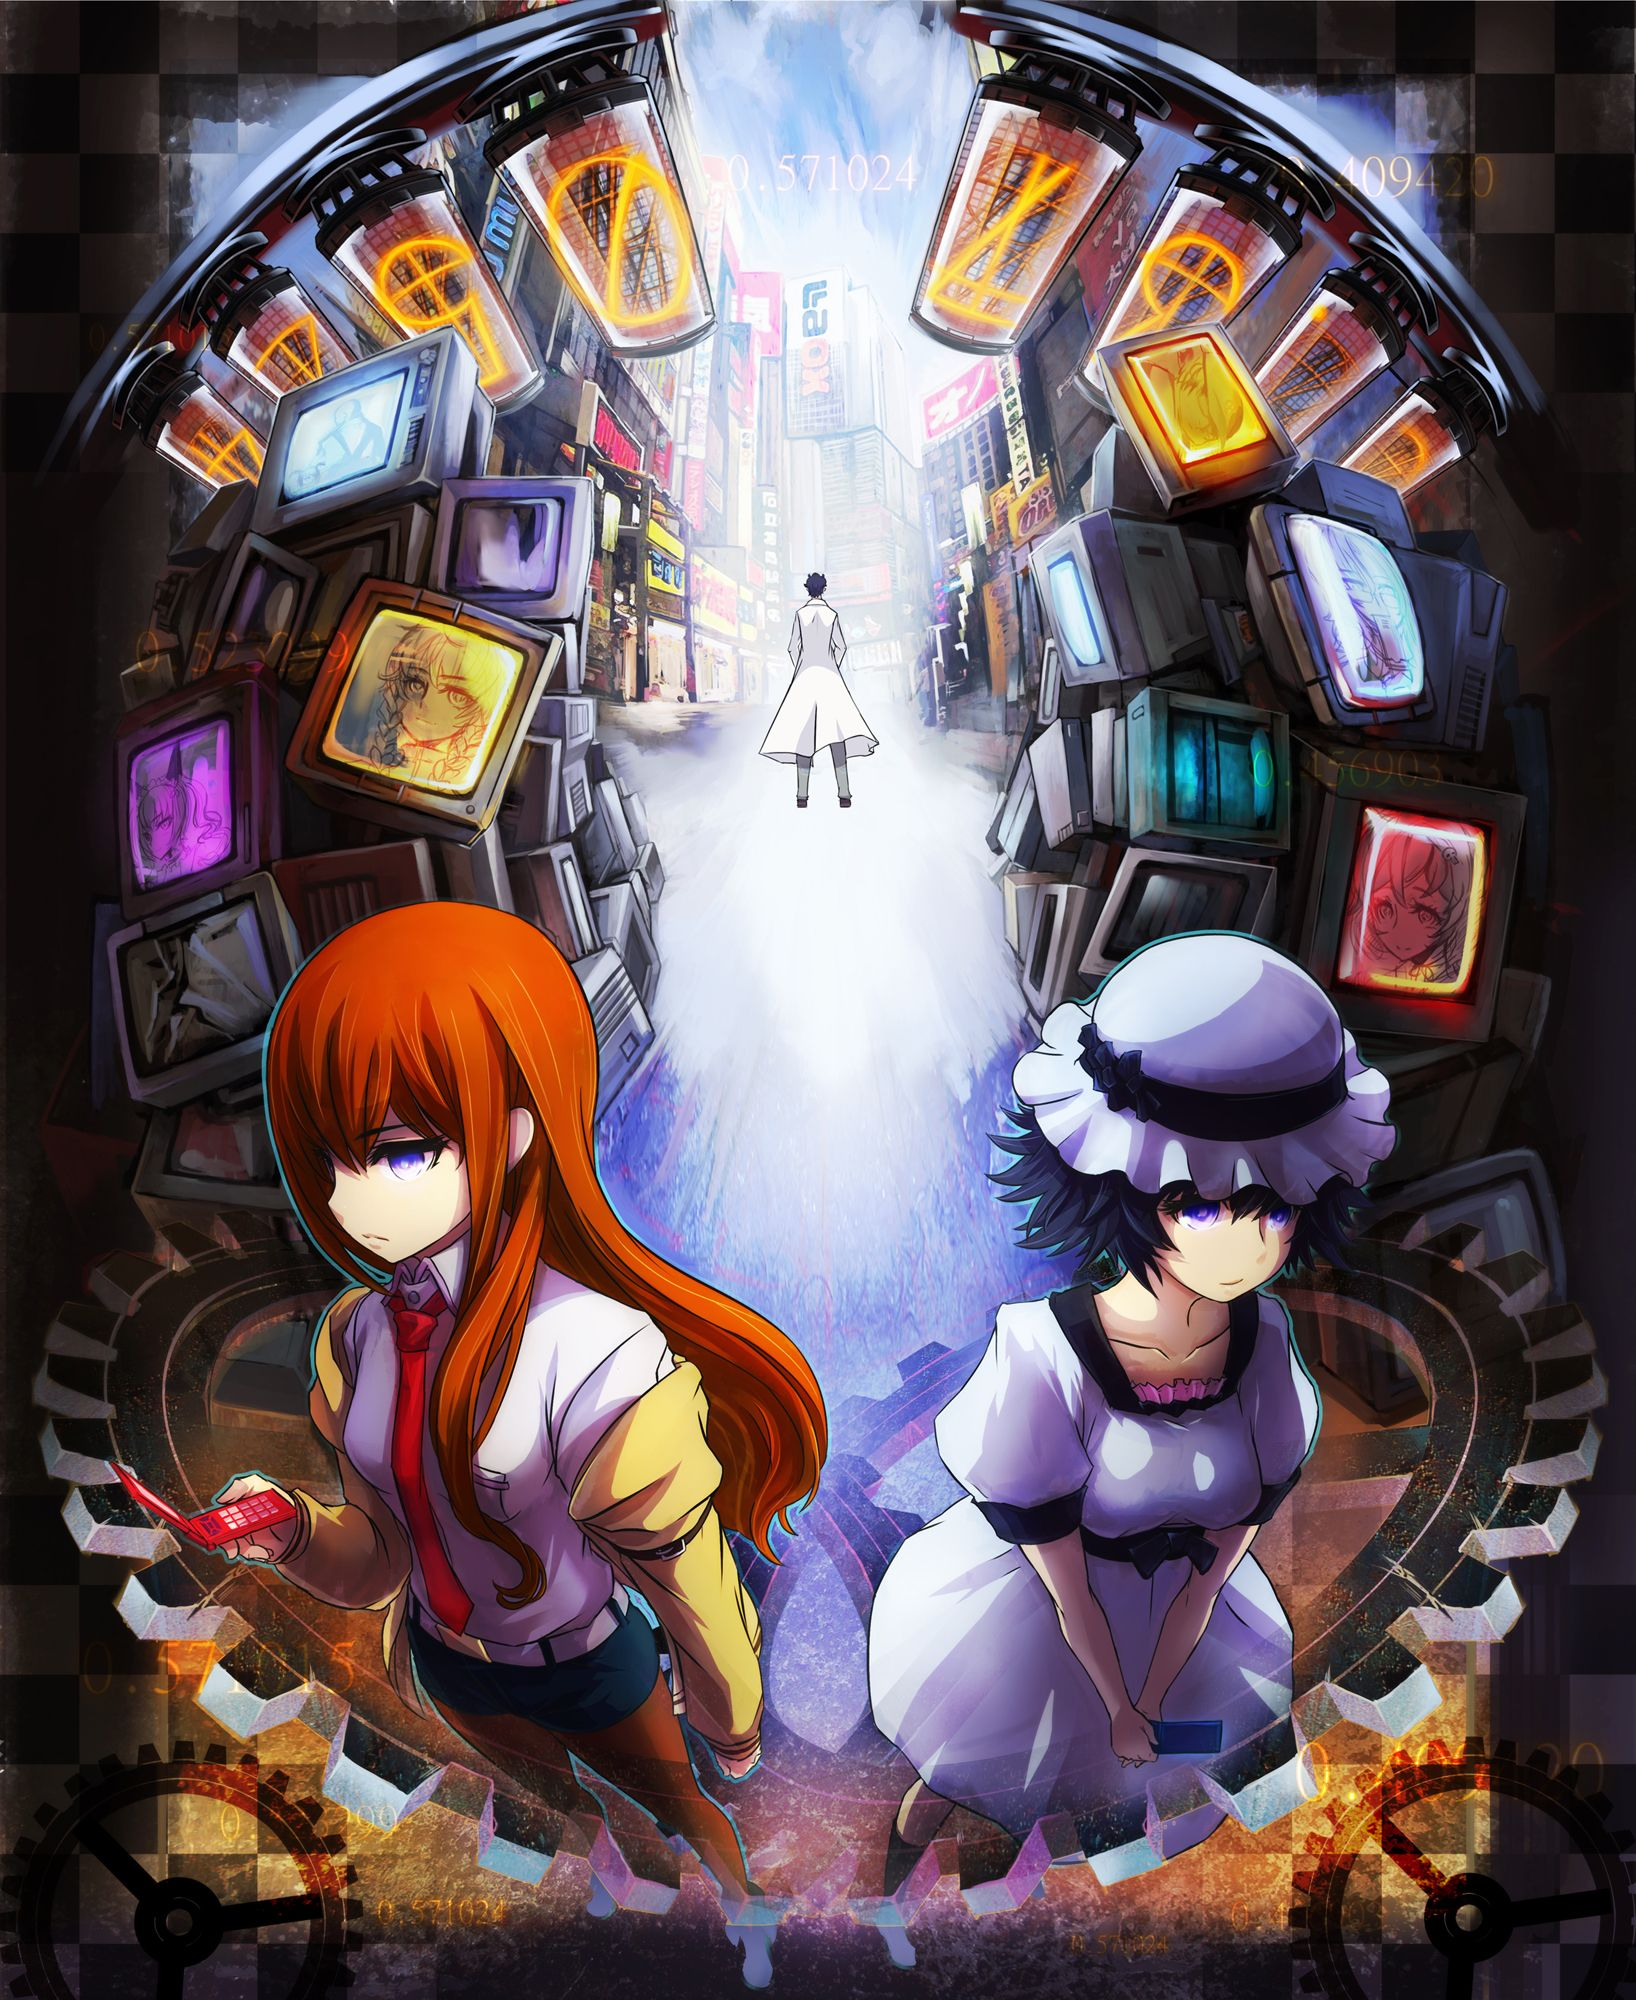 Pin by Entity002 on Steins;Gate Specifically Anime